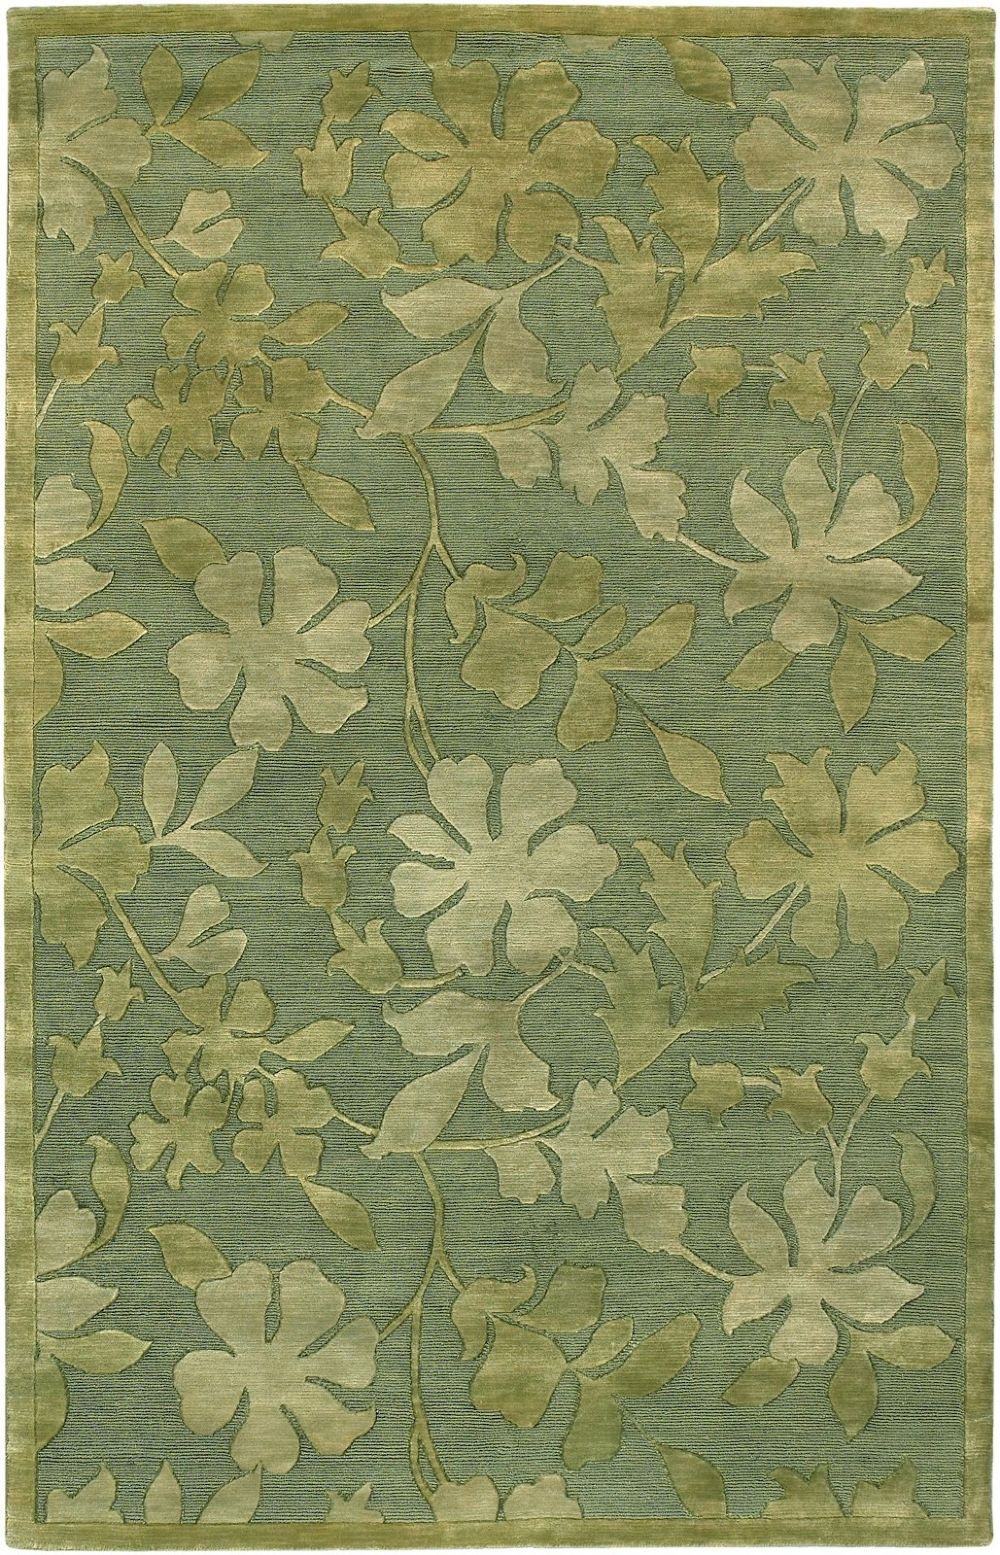 surya mugal country & floral area rug collection